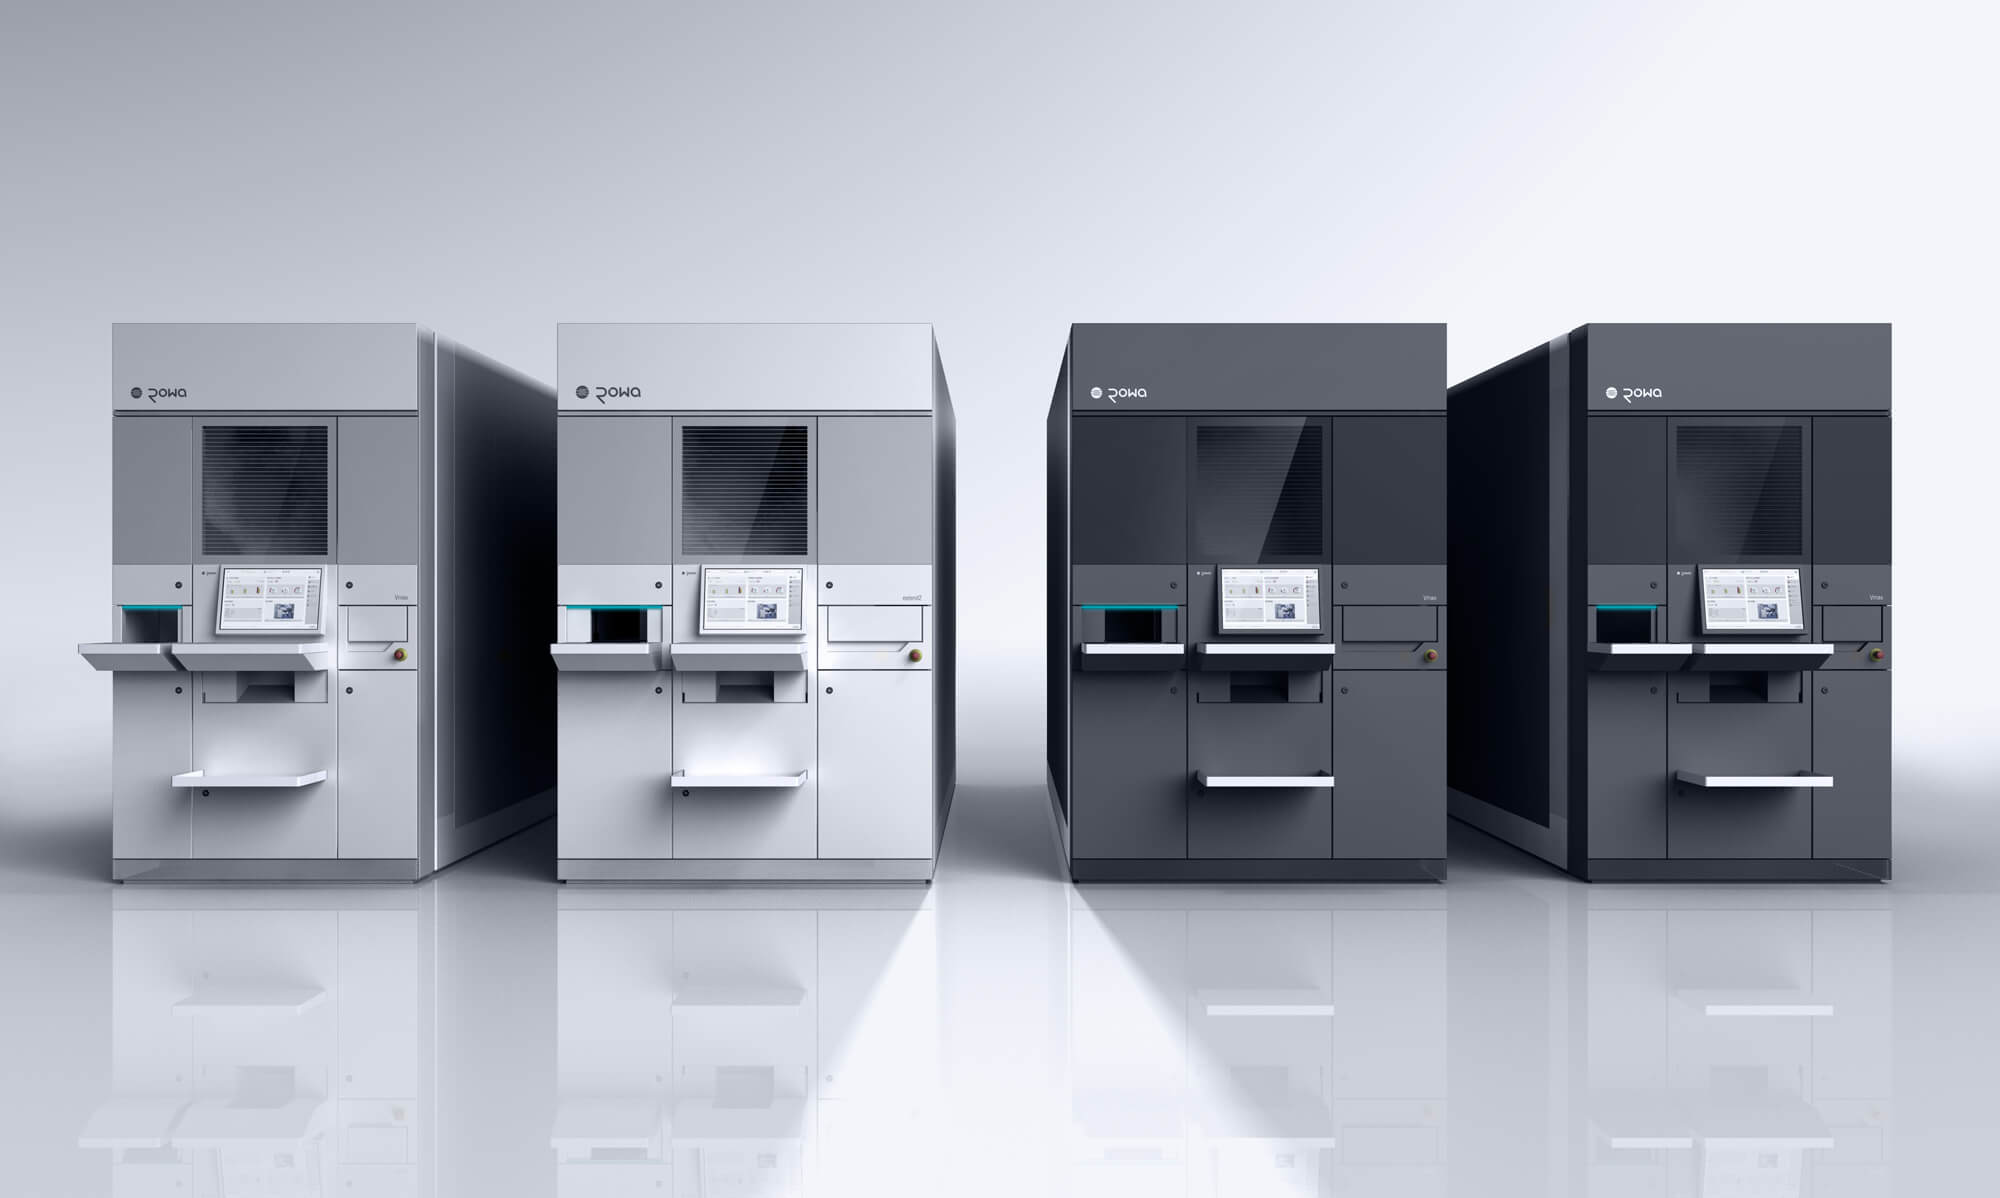 Dnalogic Pneumatic Tube Systems By Swisslog And Pharmacy